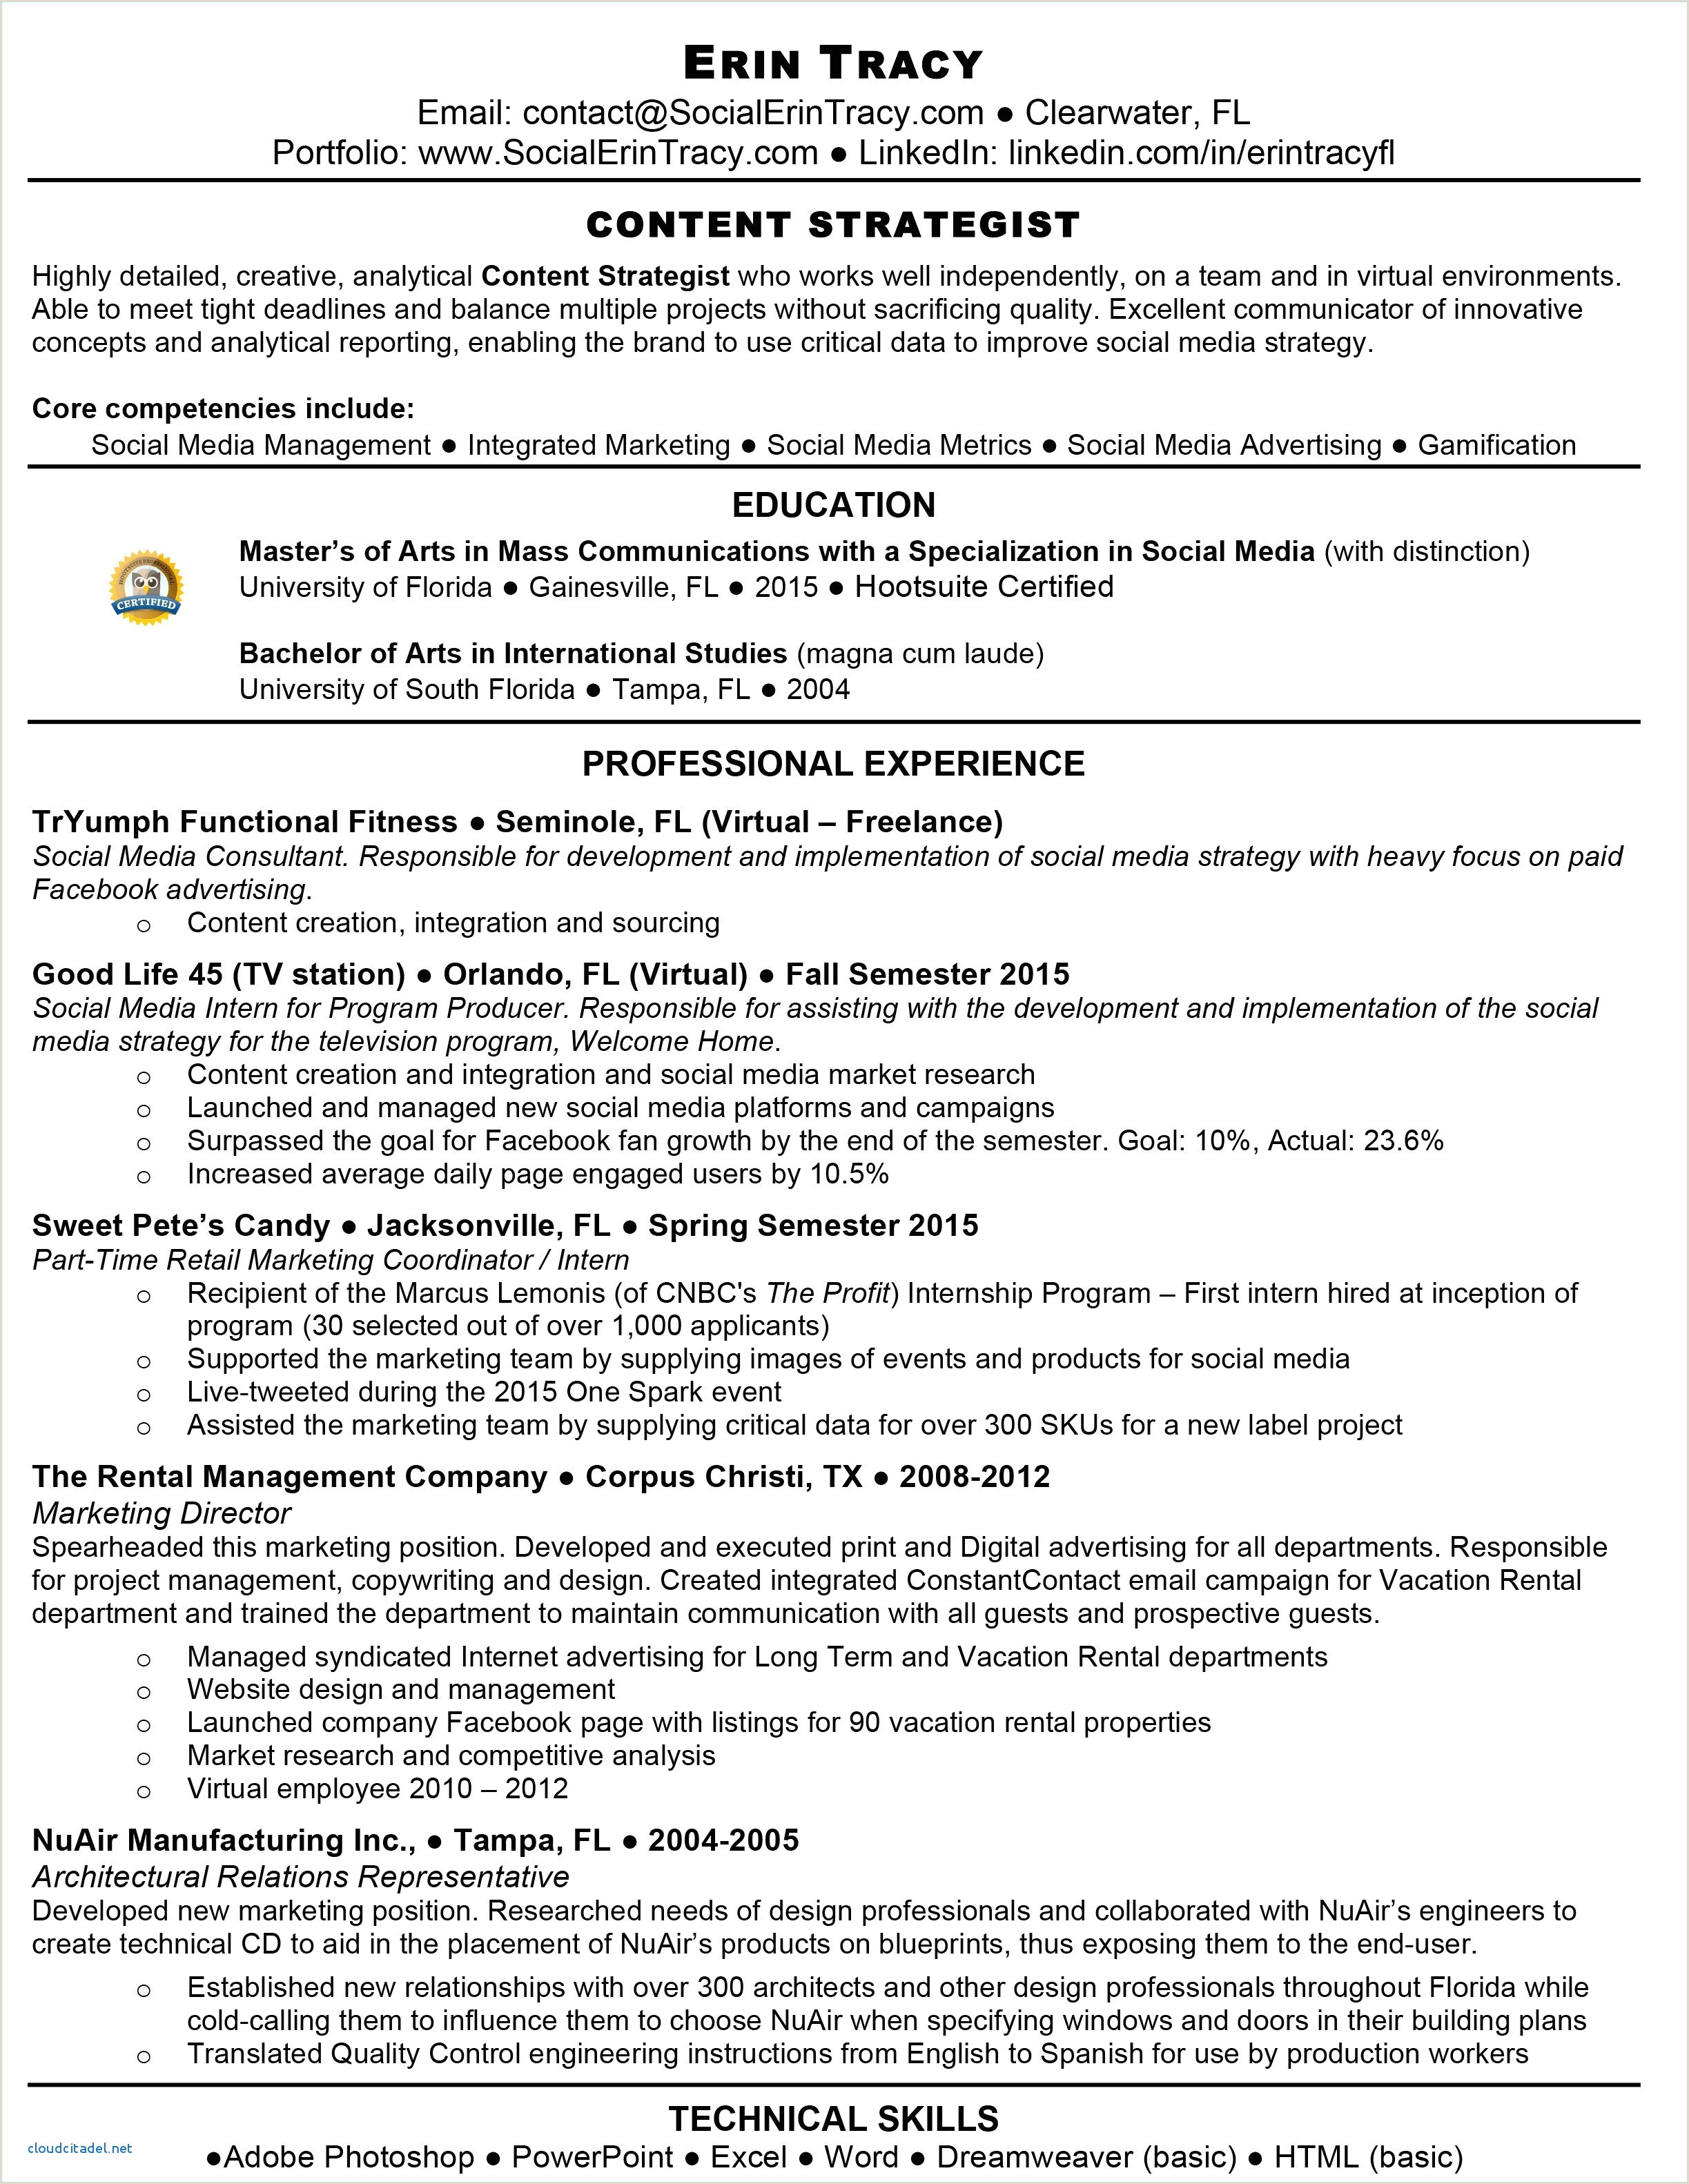 Sample Resume 2015 New Font Names Sample Resume Font Size